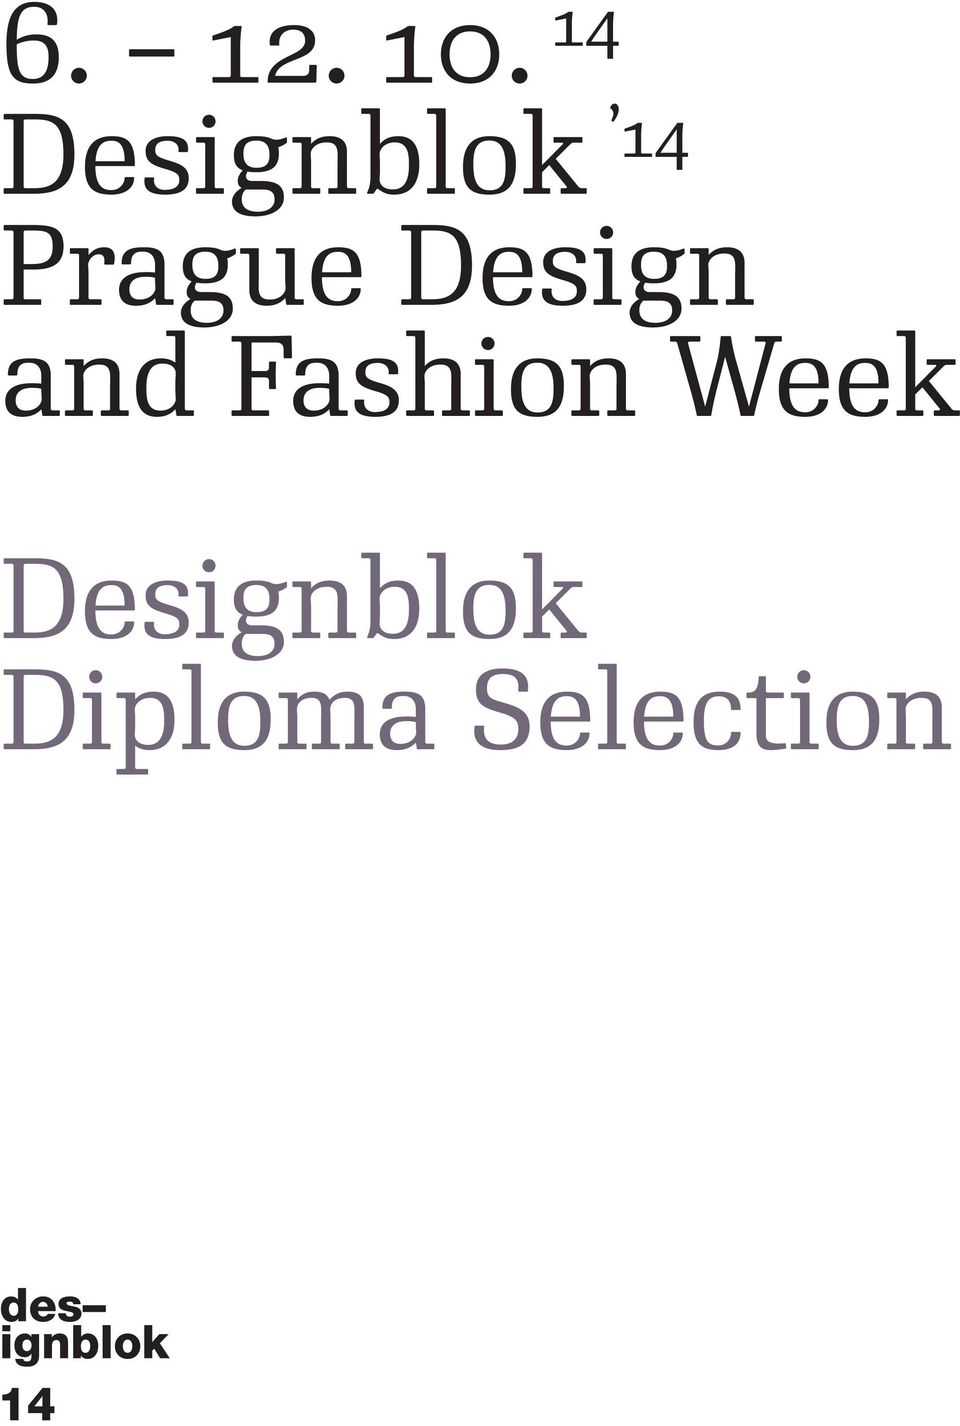 Prague Design and